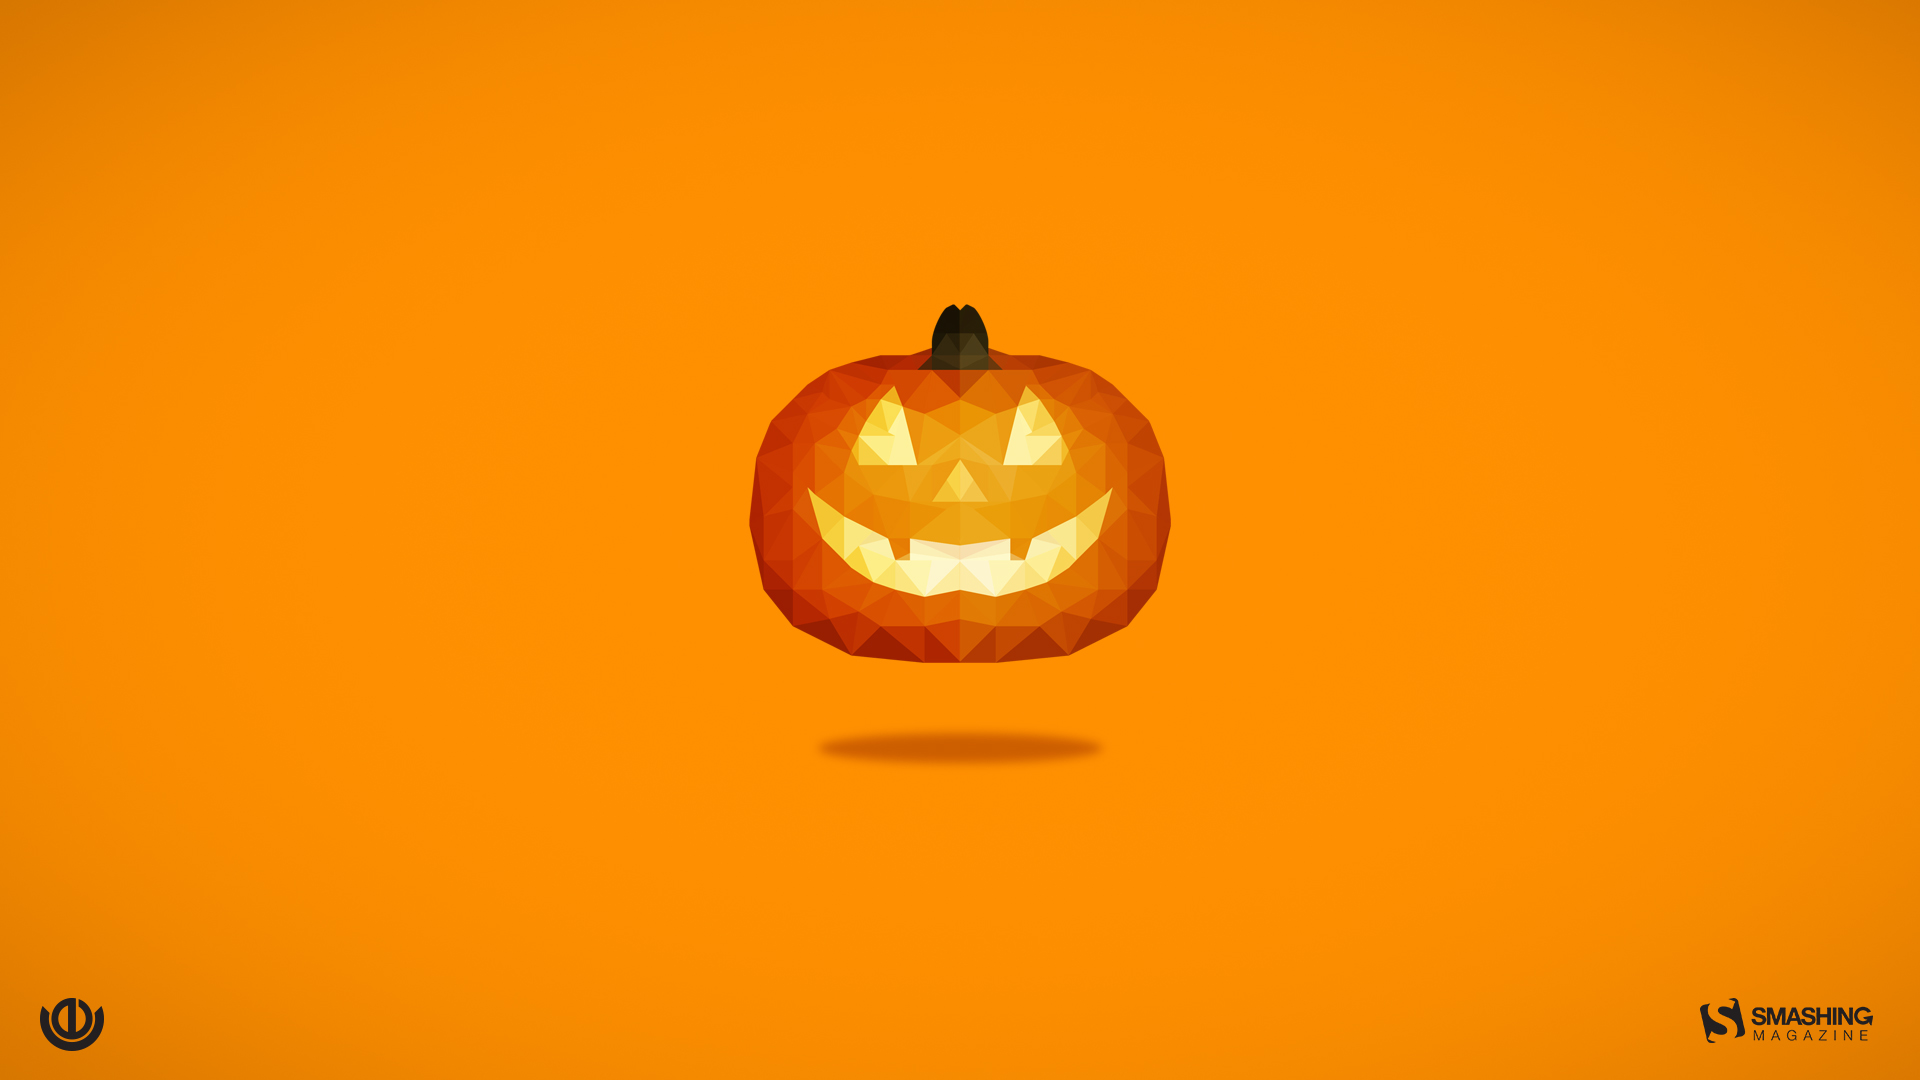 Halloween Season October 2019 Wallpapers for Desktop